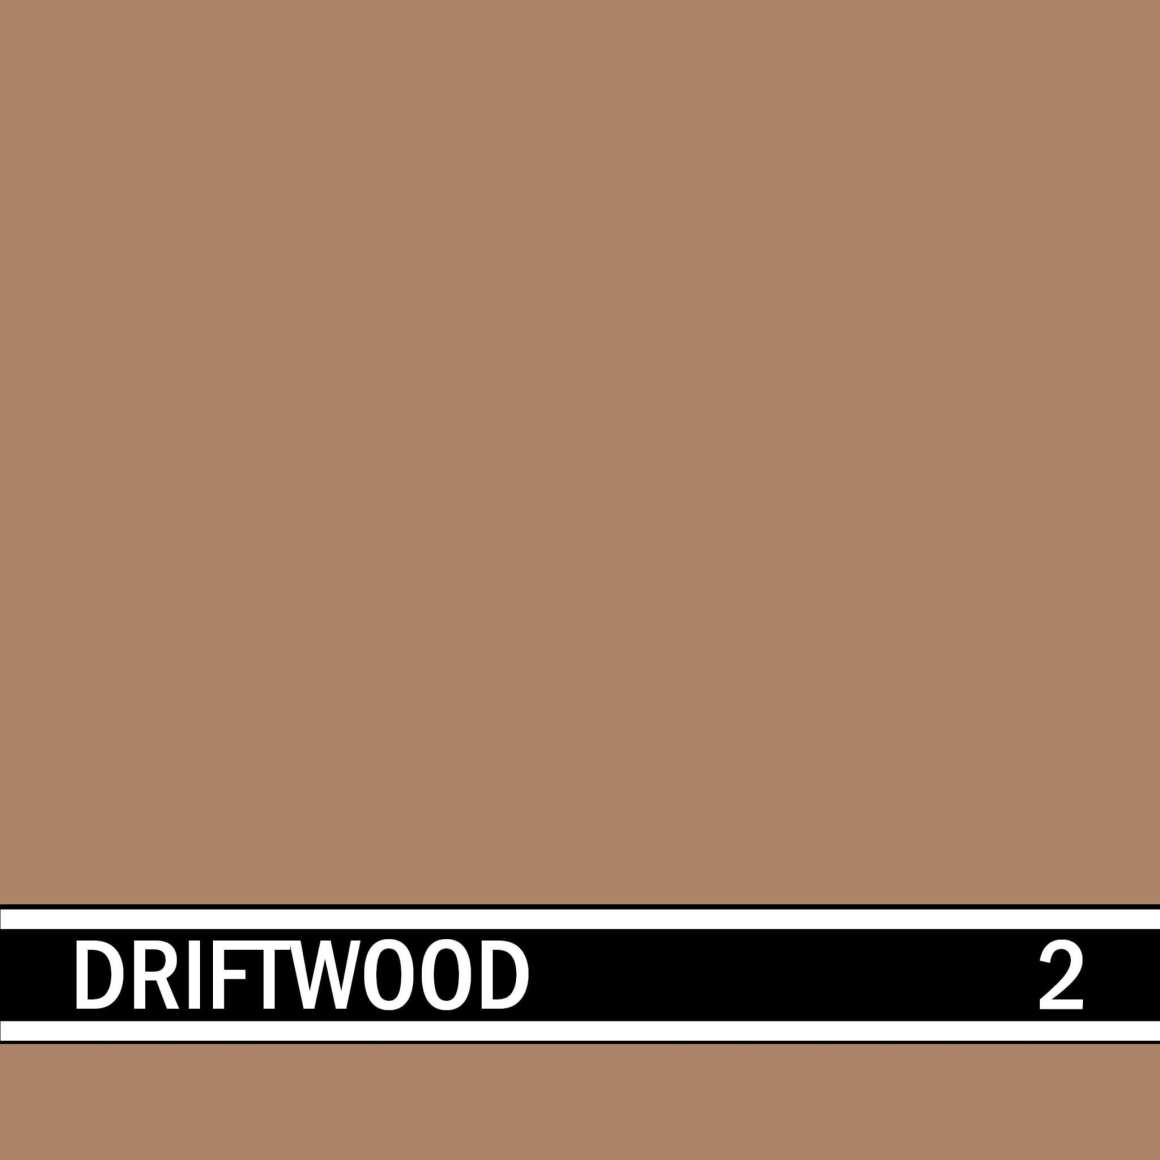 Driftwood integral concrete color for stamped concrete and decorative colored concrete